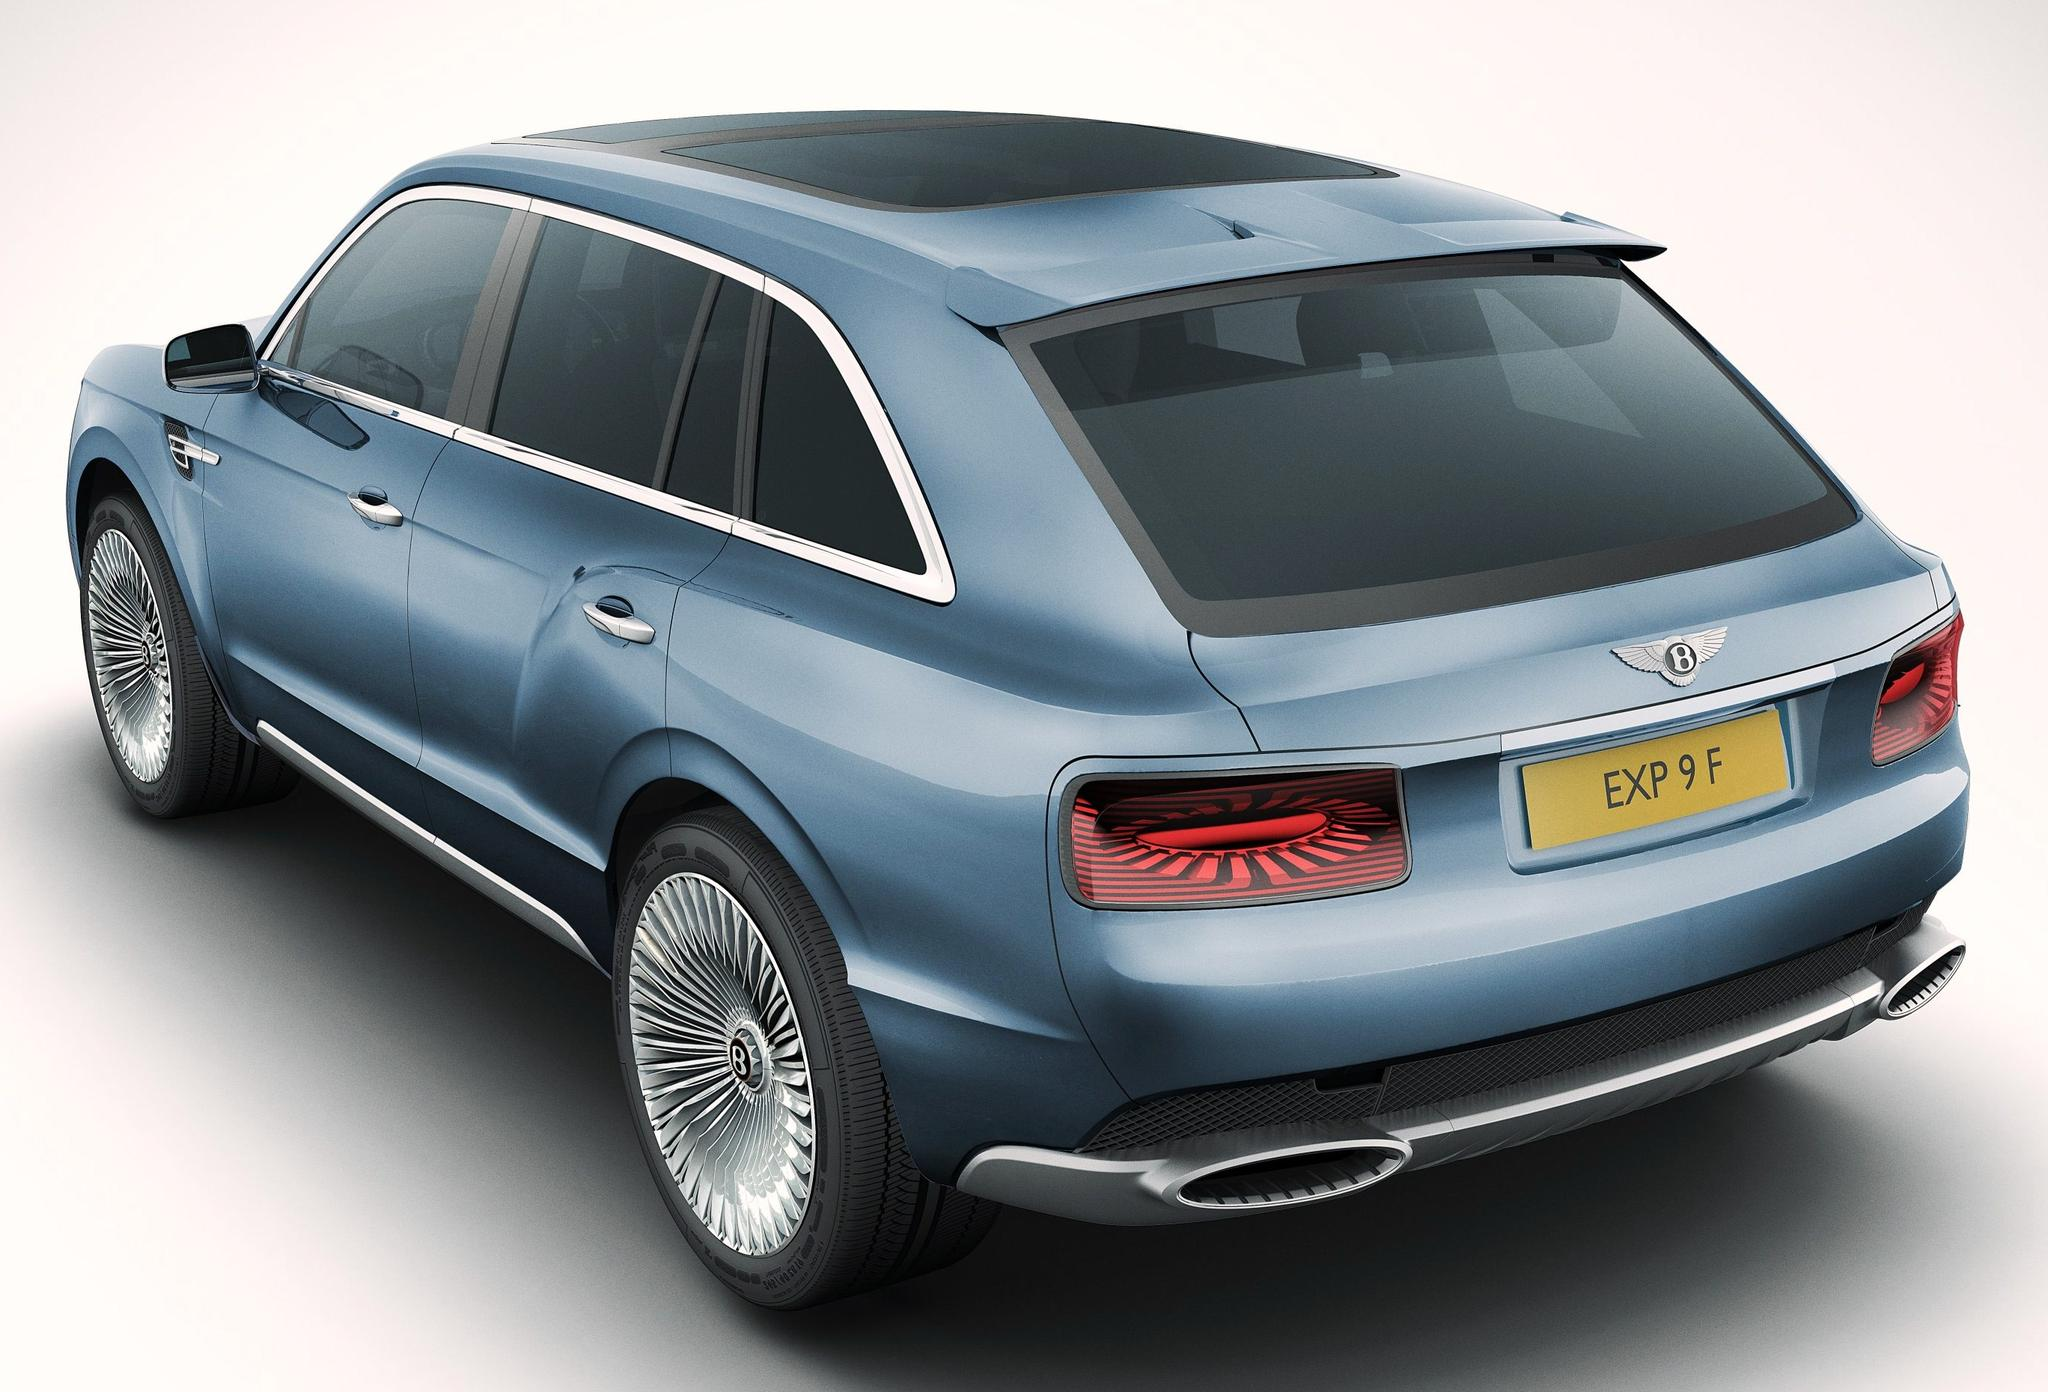 Bentley SUV Free Wallpaper For Ipad